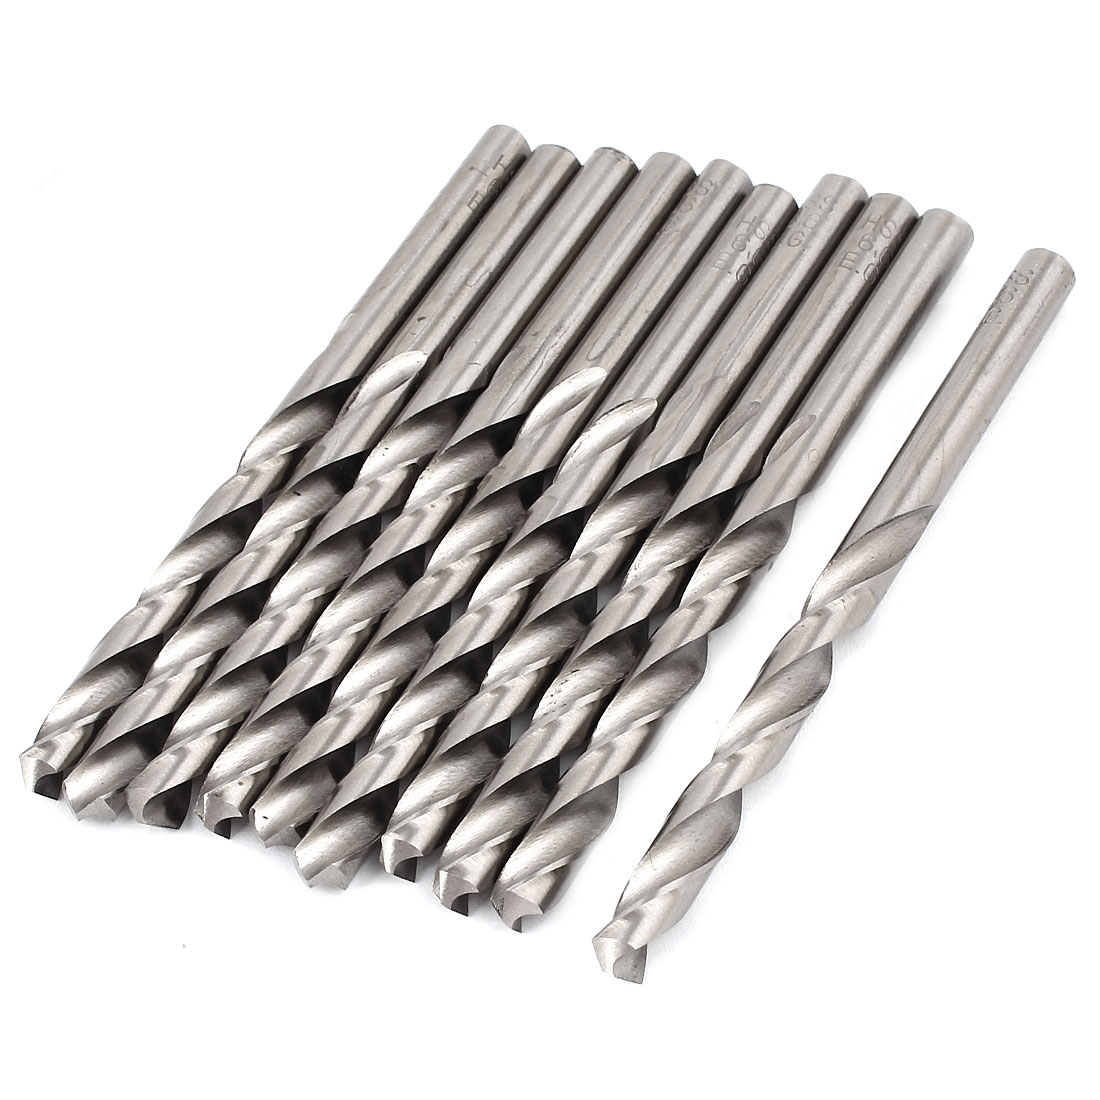 10 Pcs 68mm Length Flute 6.6mm Dia Metal Marble HSS Twist Drilling Drill Bit